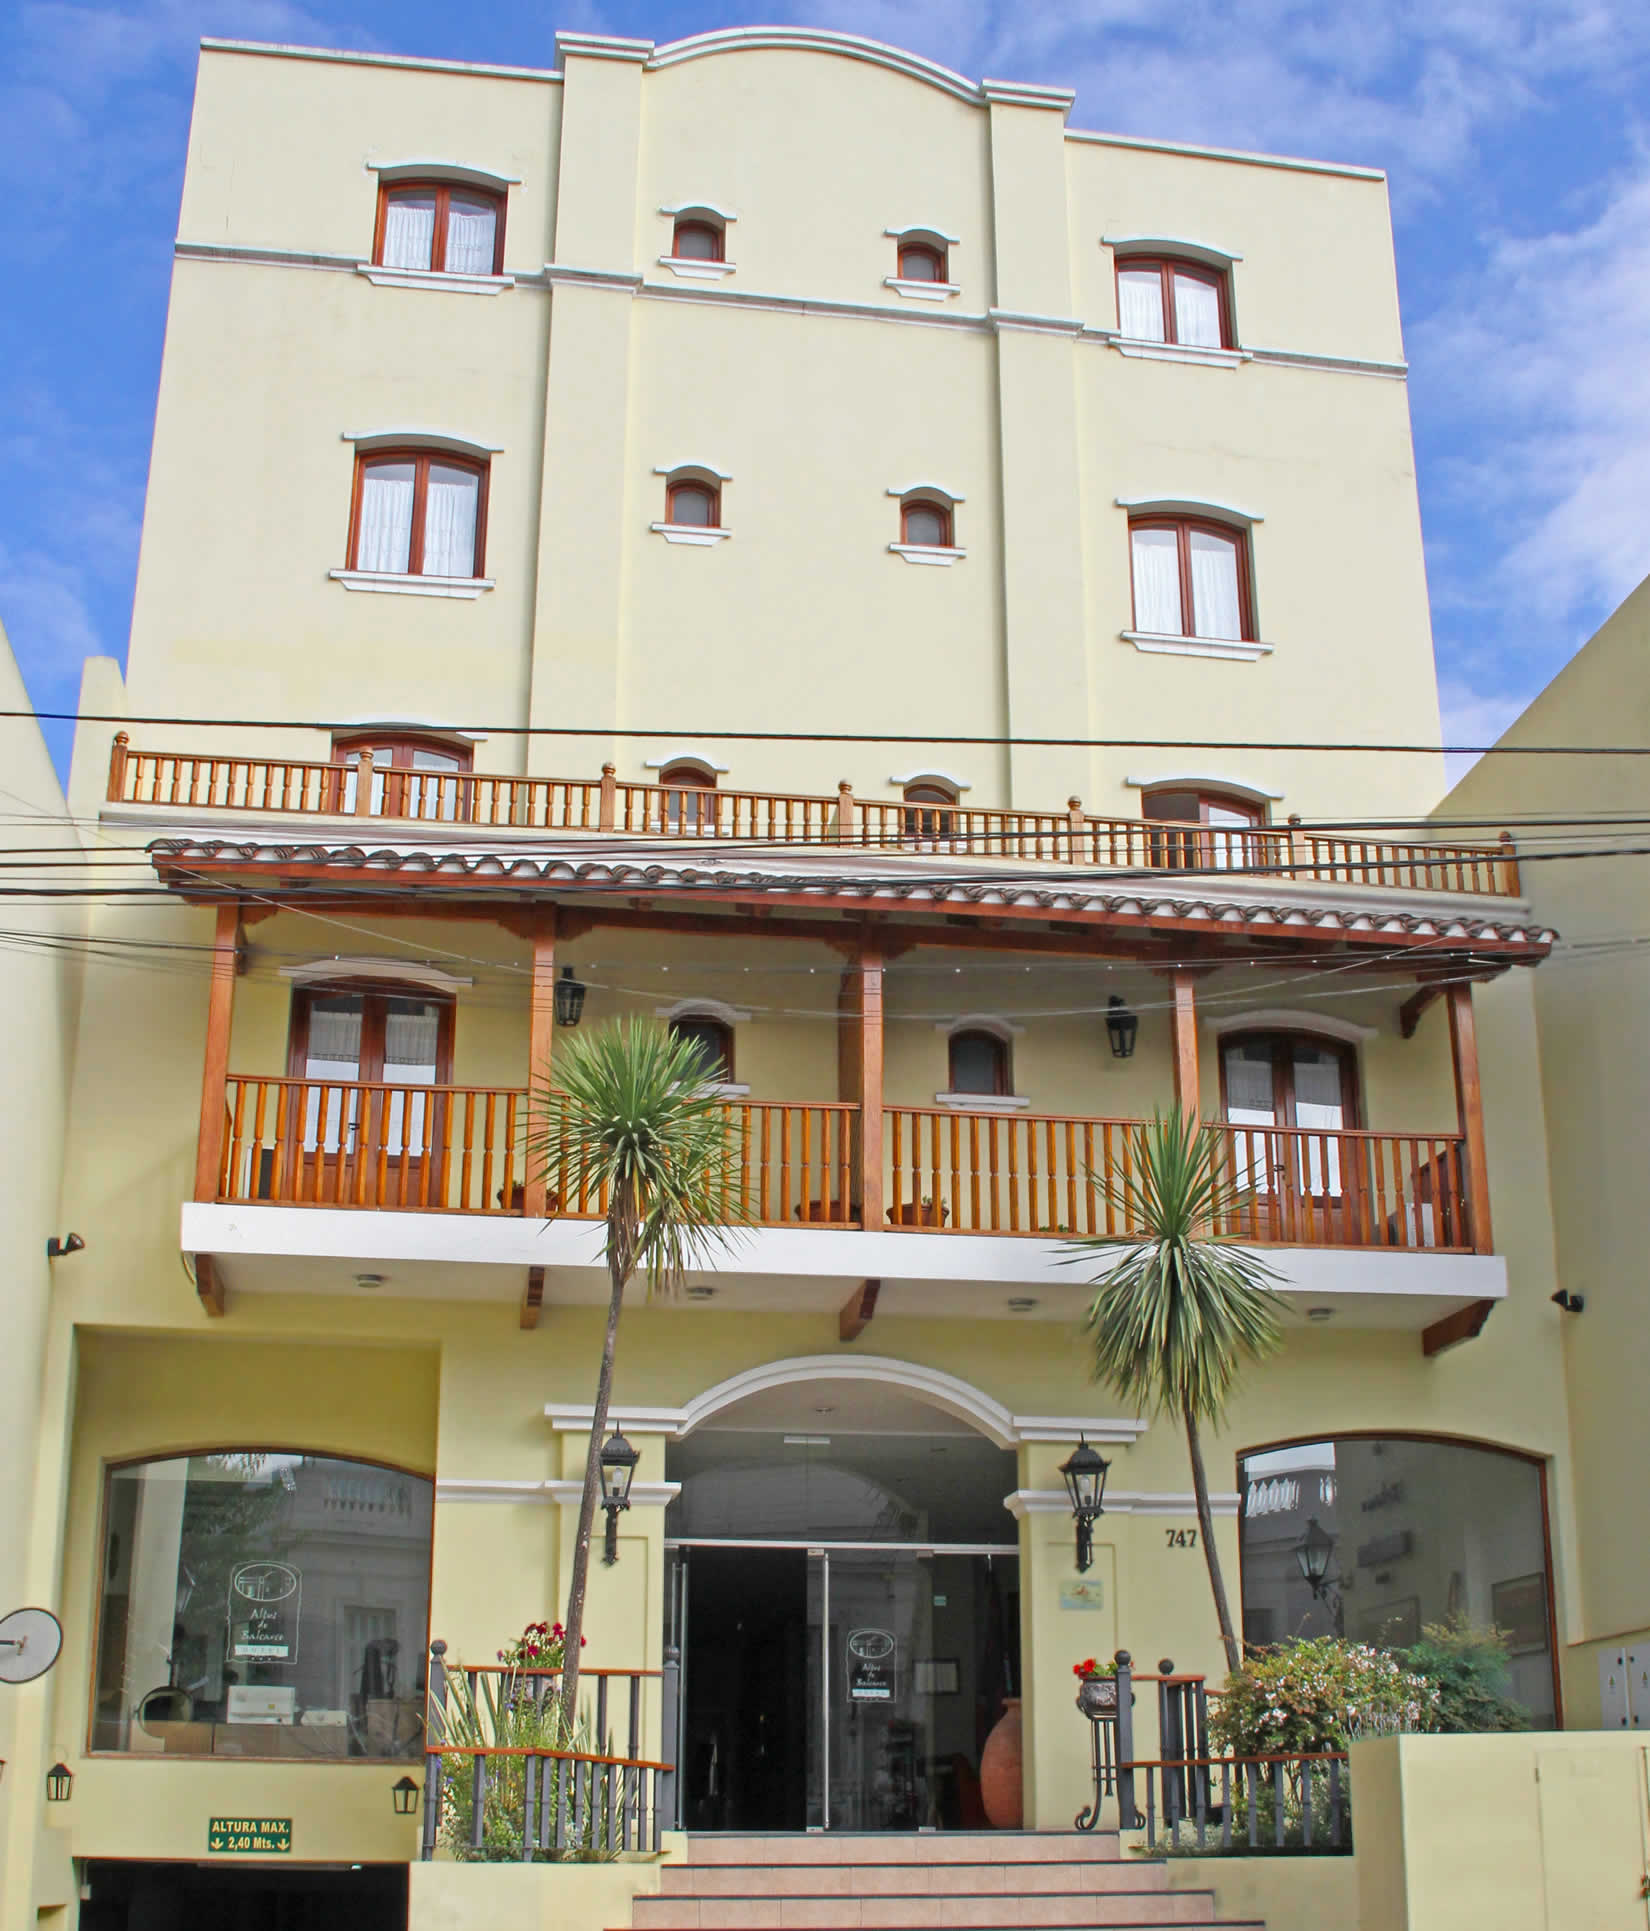 Hotel Altos de Balcarce - Salta